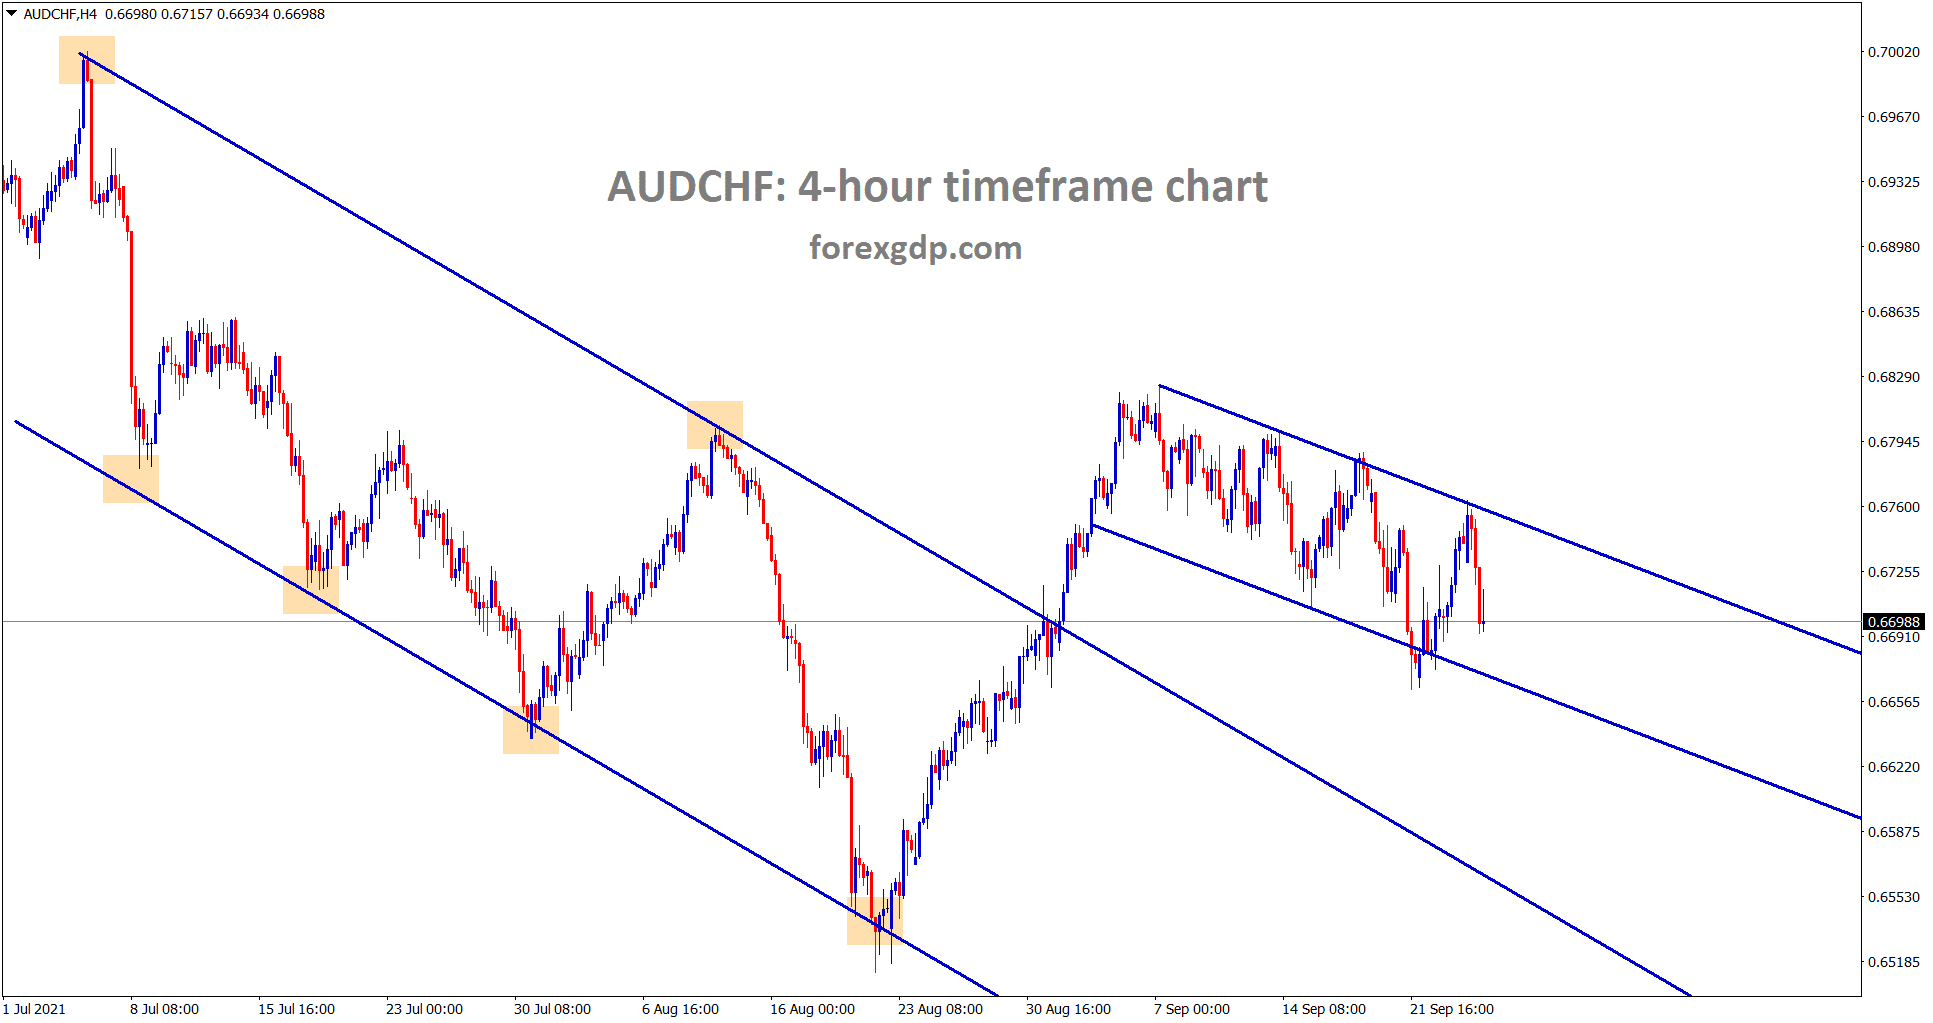 AUDCHF is moving in a minor descending channel now